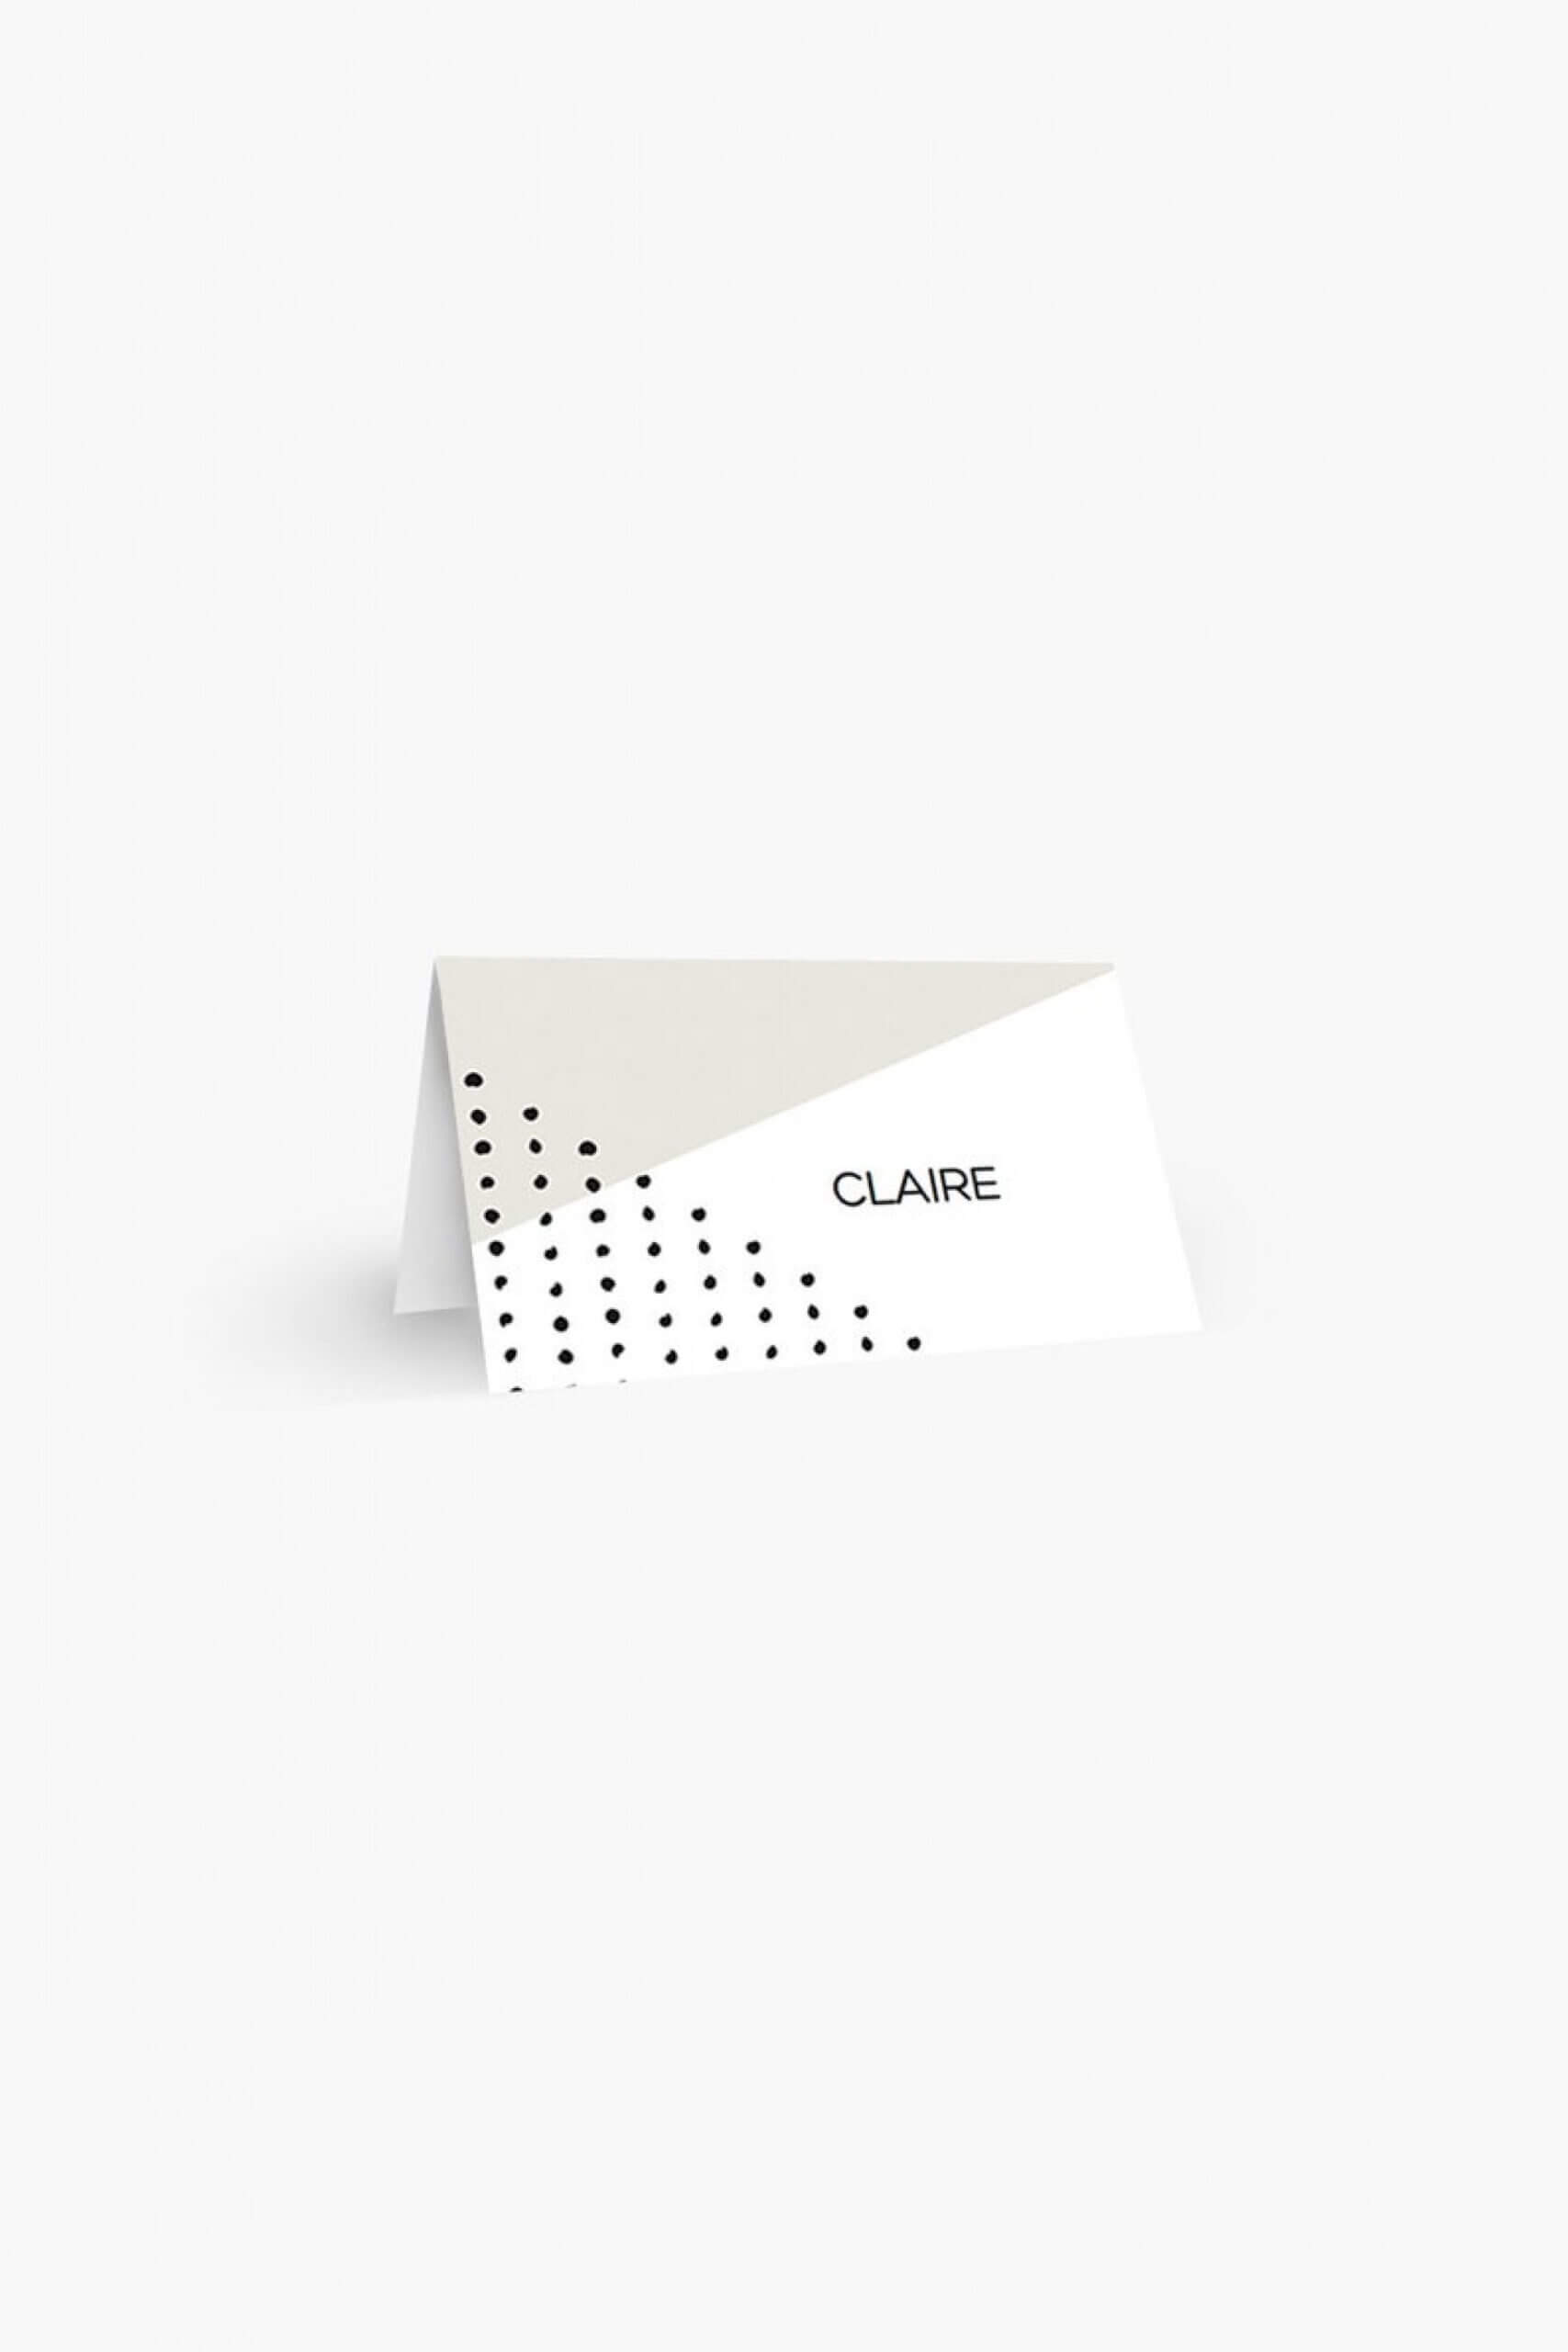 017 Printable Place Cards Template Breathtaking Ideas Word Pertaining To Paper Source Templates Place Cards